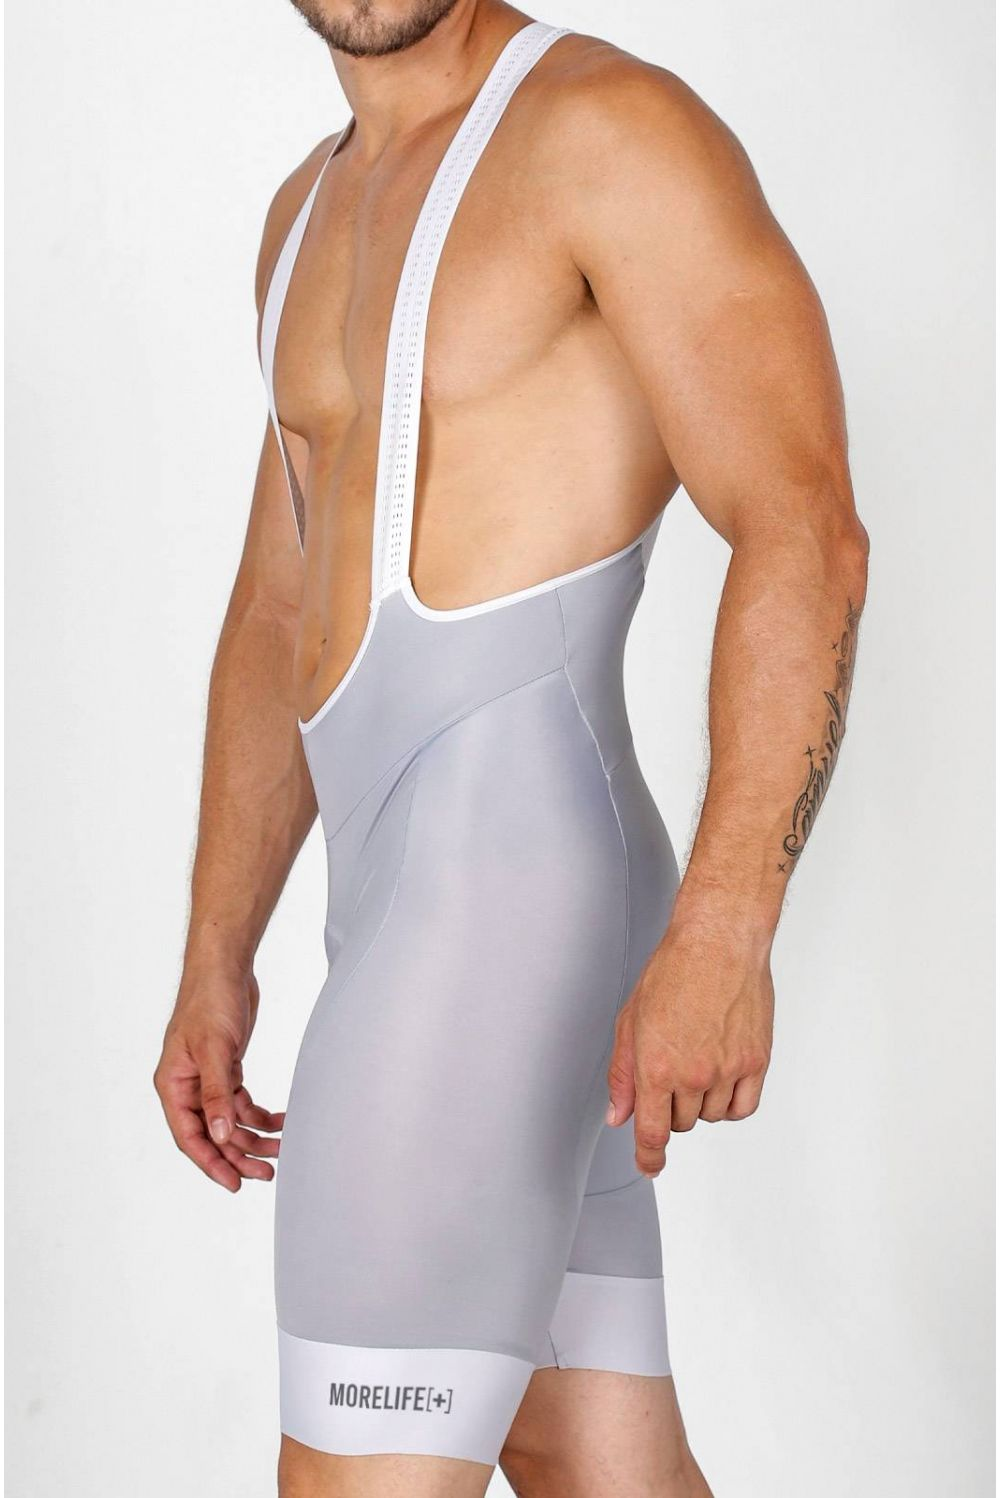 GREY SILVER BIB SHORT CE2528H